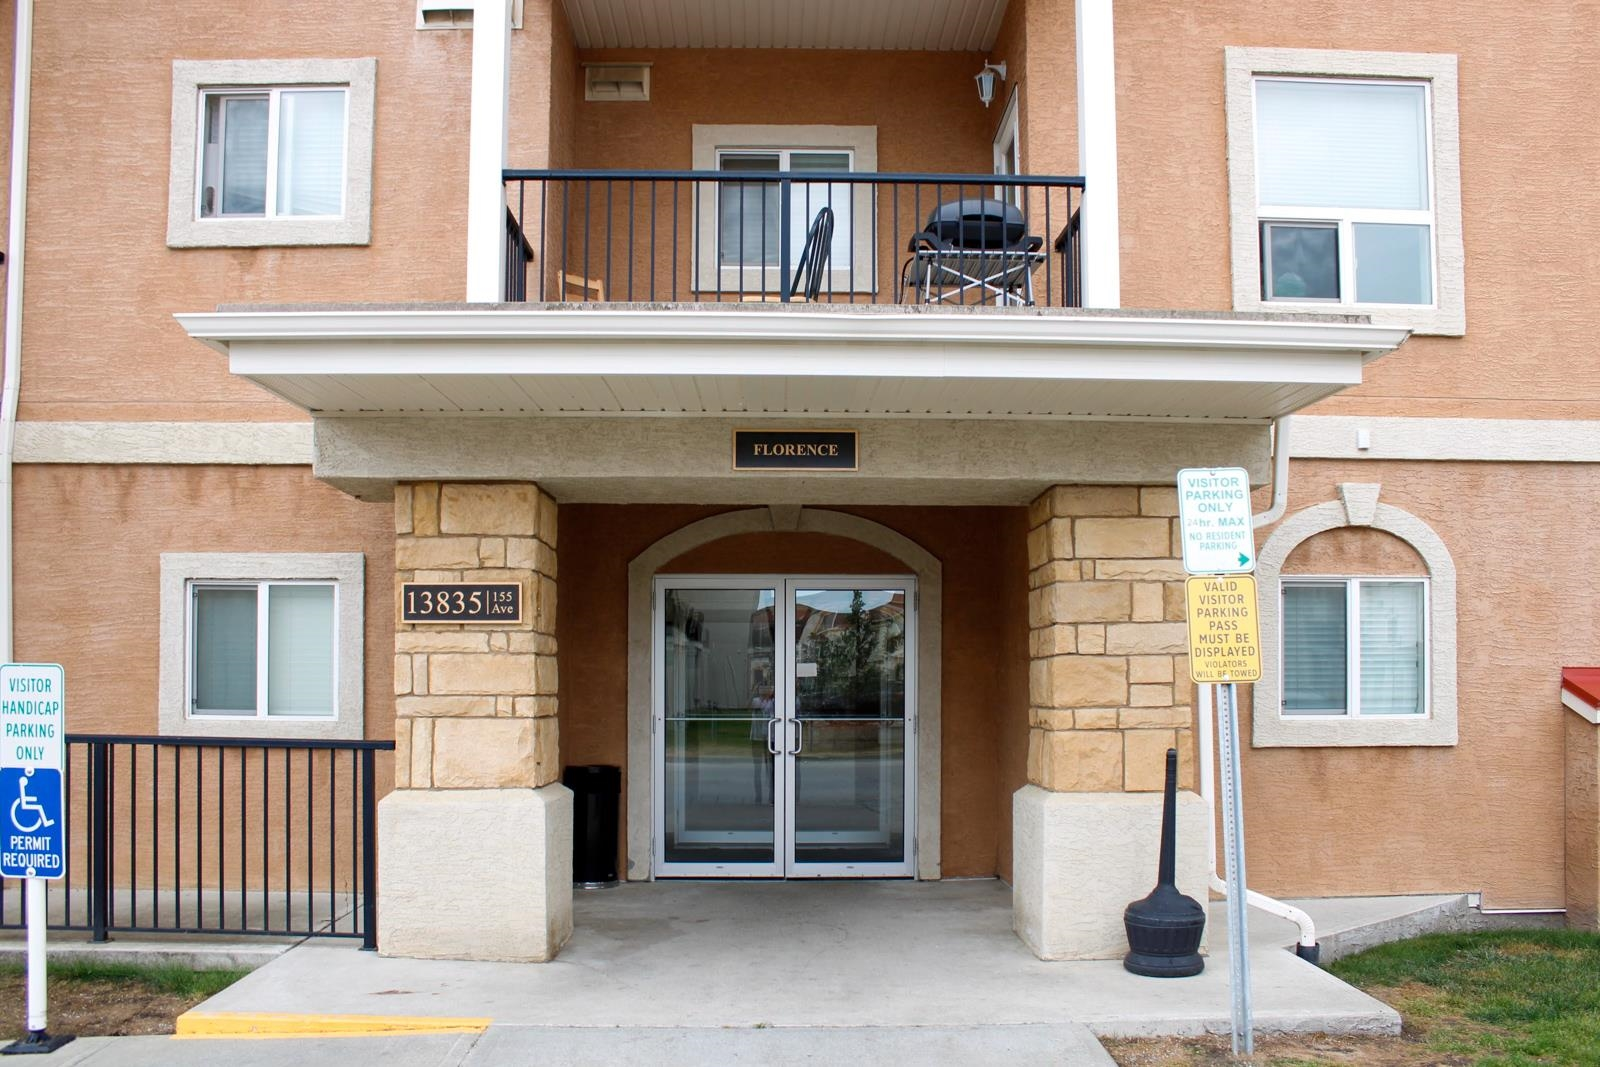 Meticulously kept 1 bedroom condo in Tuscan Village with view of green space.  This unit has all you require to enter the market, underground parking, in suite laundry and a view.  Well situated unit of 641 square feet, 1 bedroom & full bathroom, all appliances, and plenty of visitor parking.  Priced to sell!